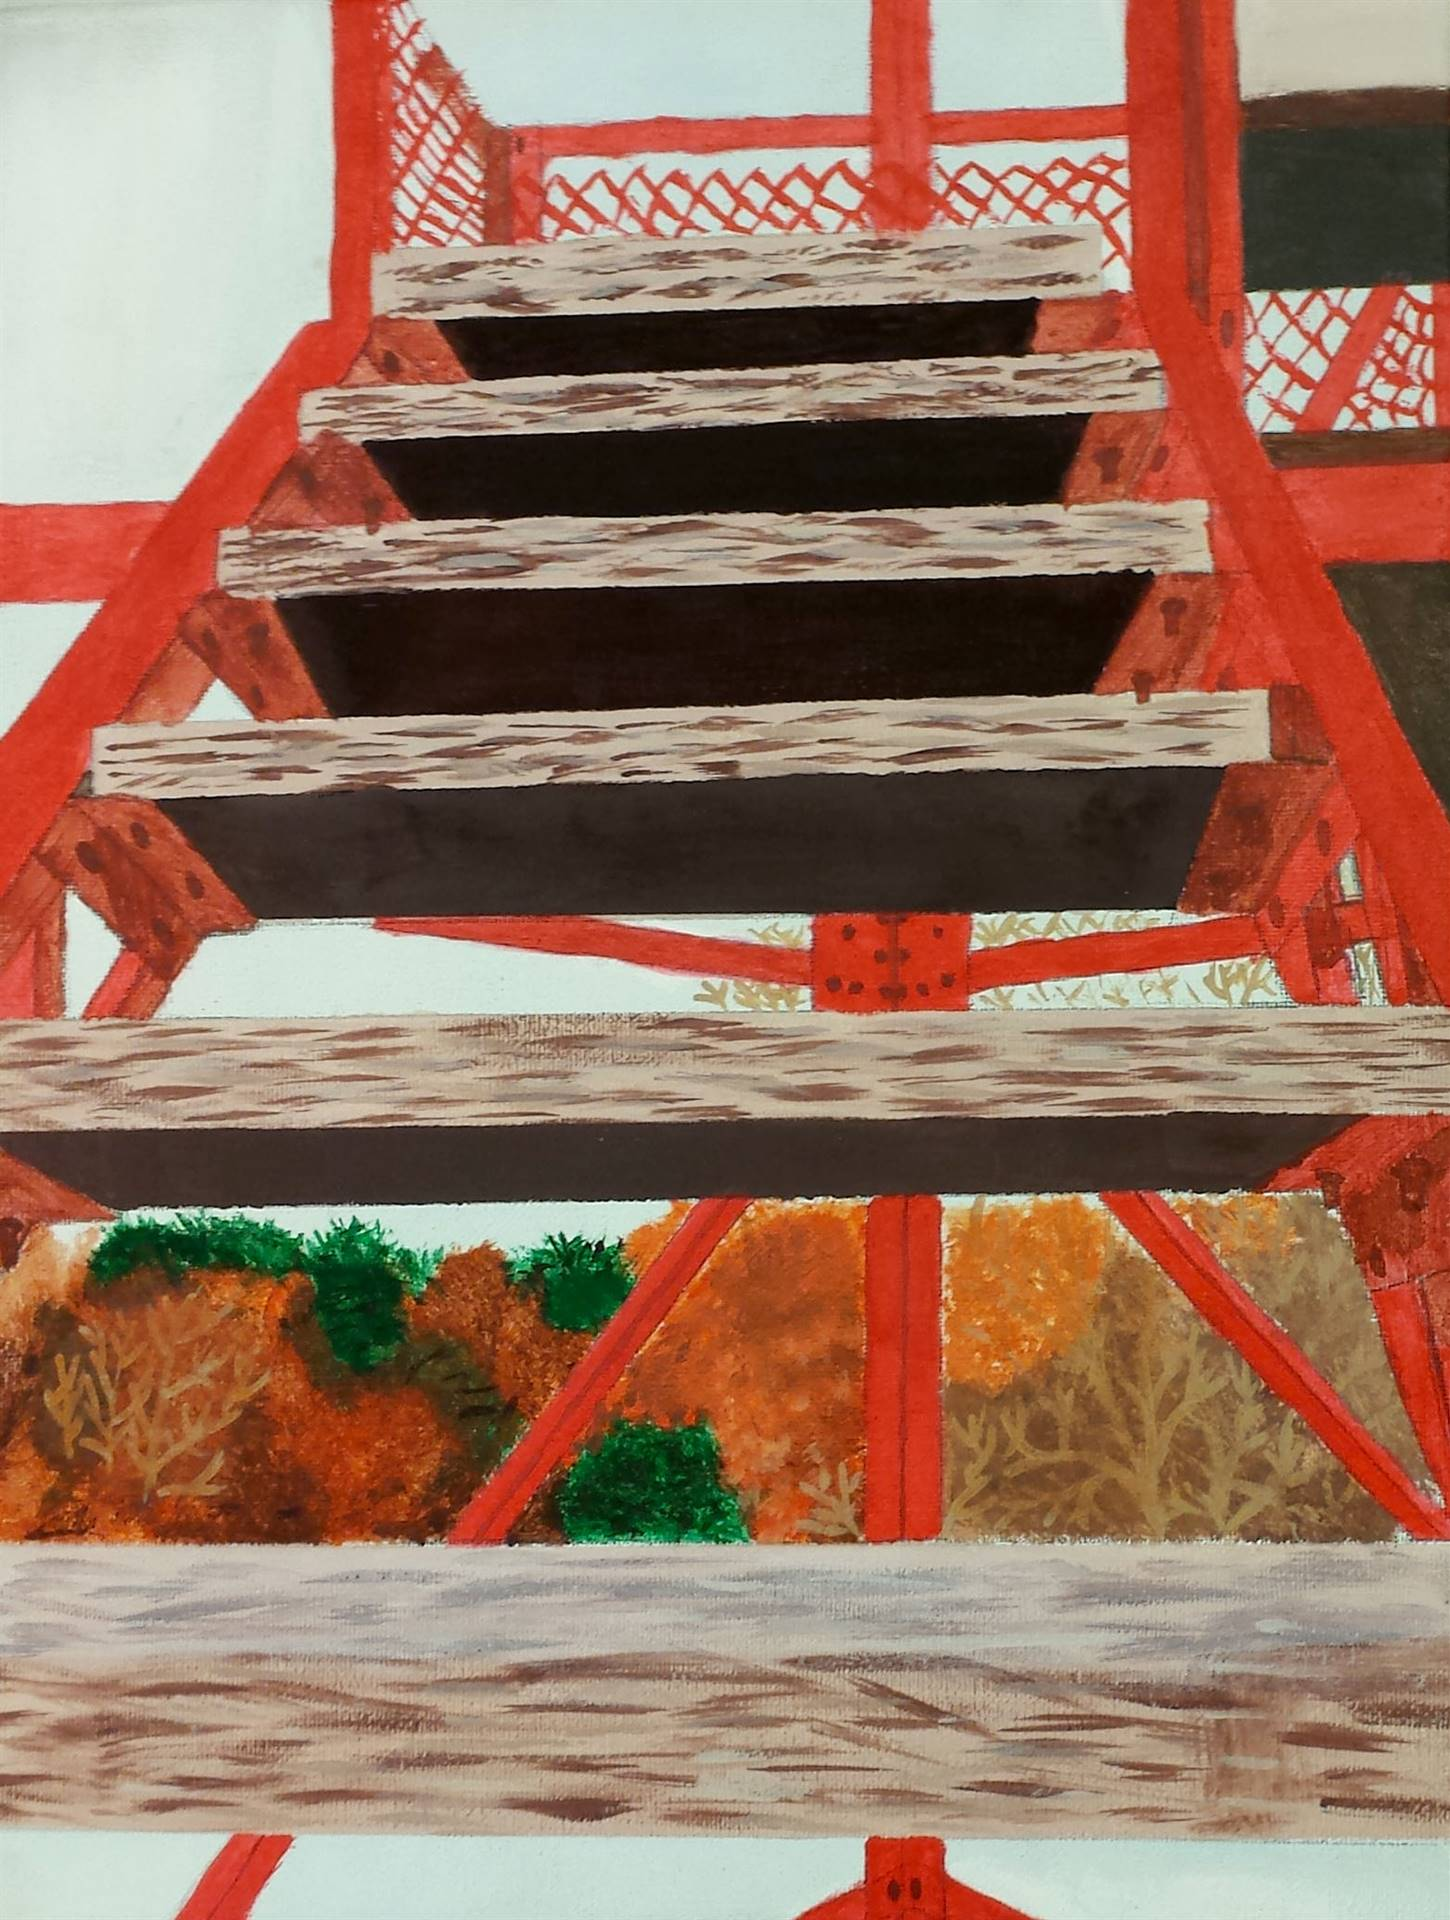 Acrylic Painting of a flight of wooden steps supported by a red-orange beams